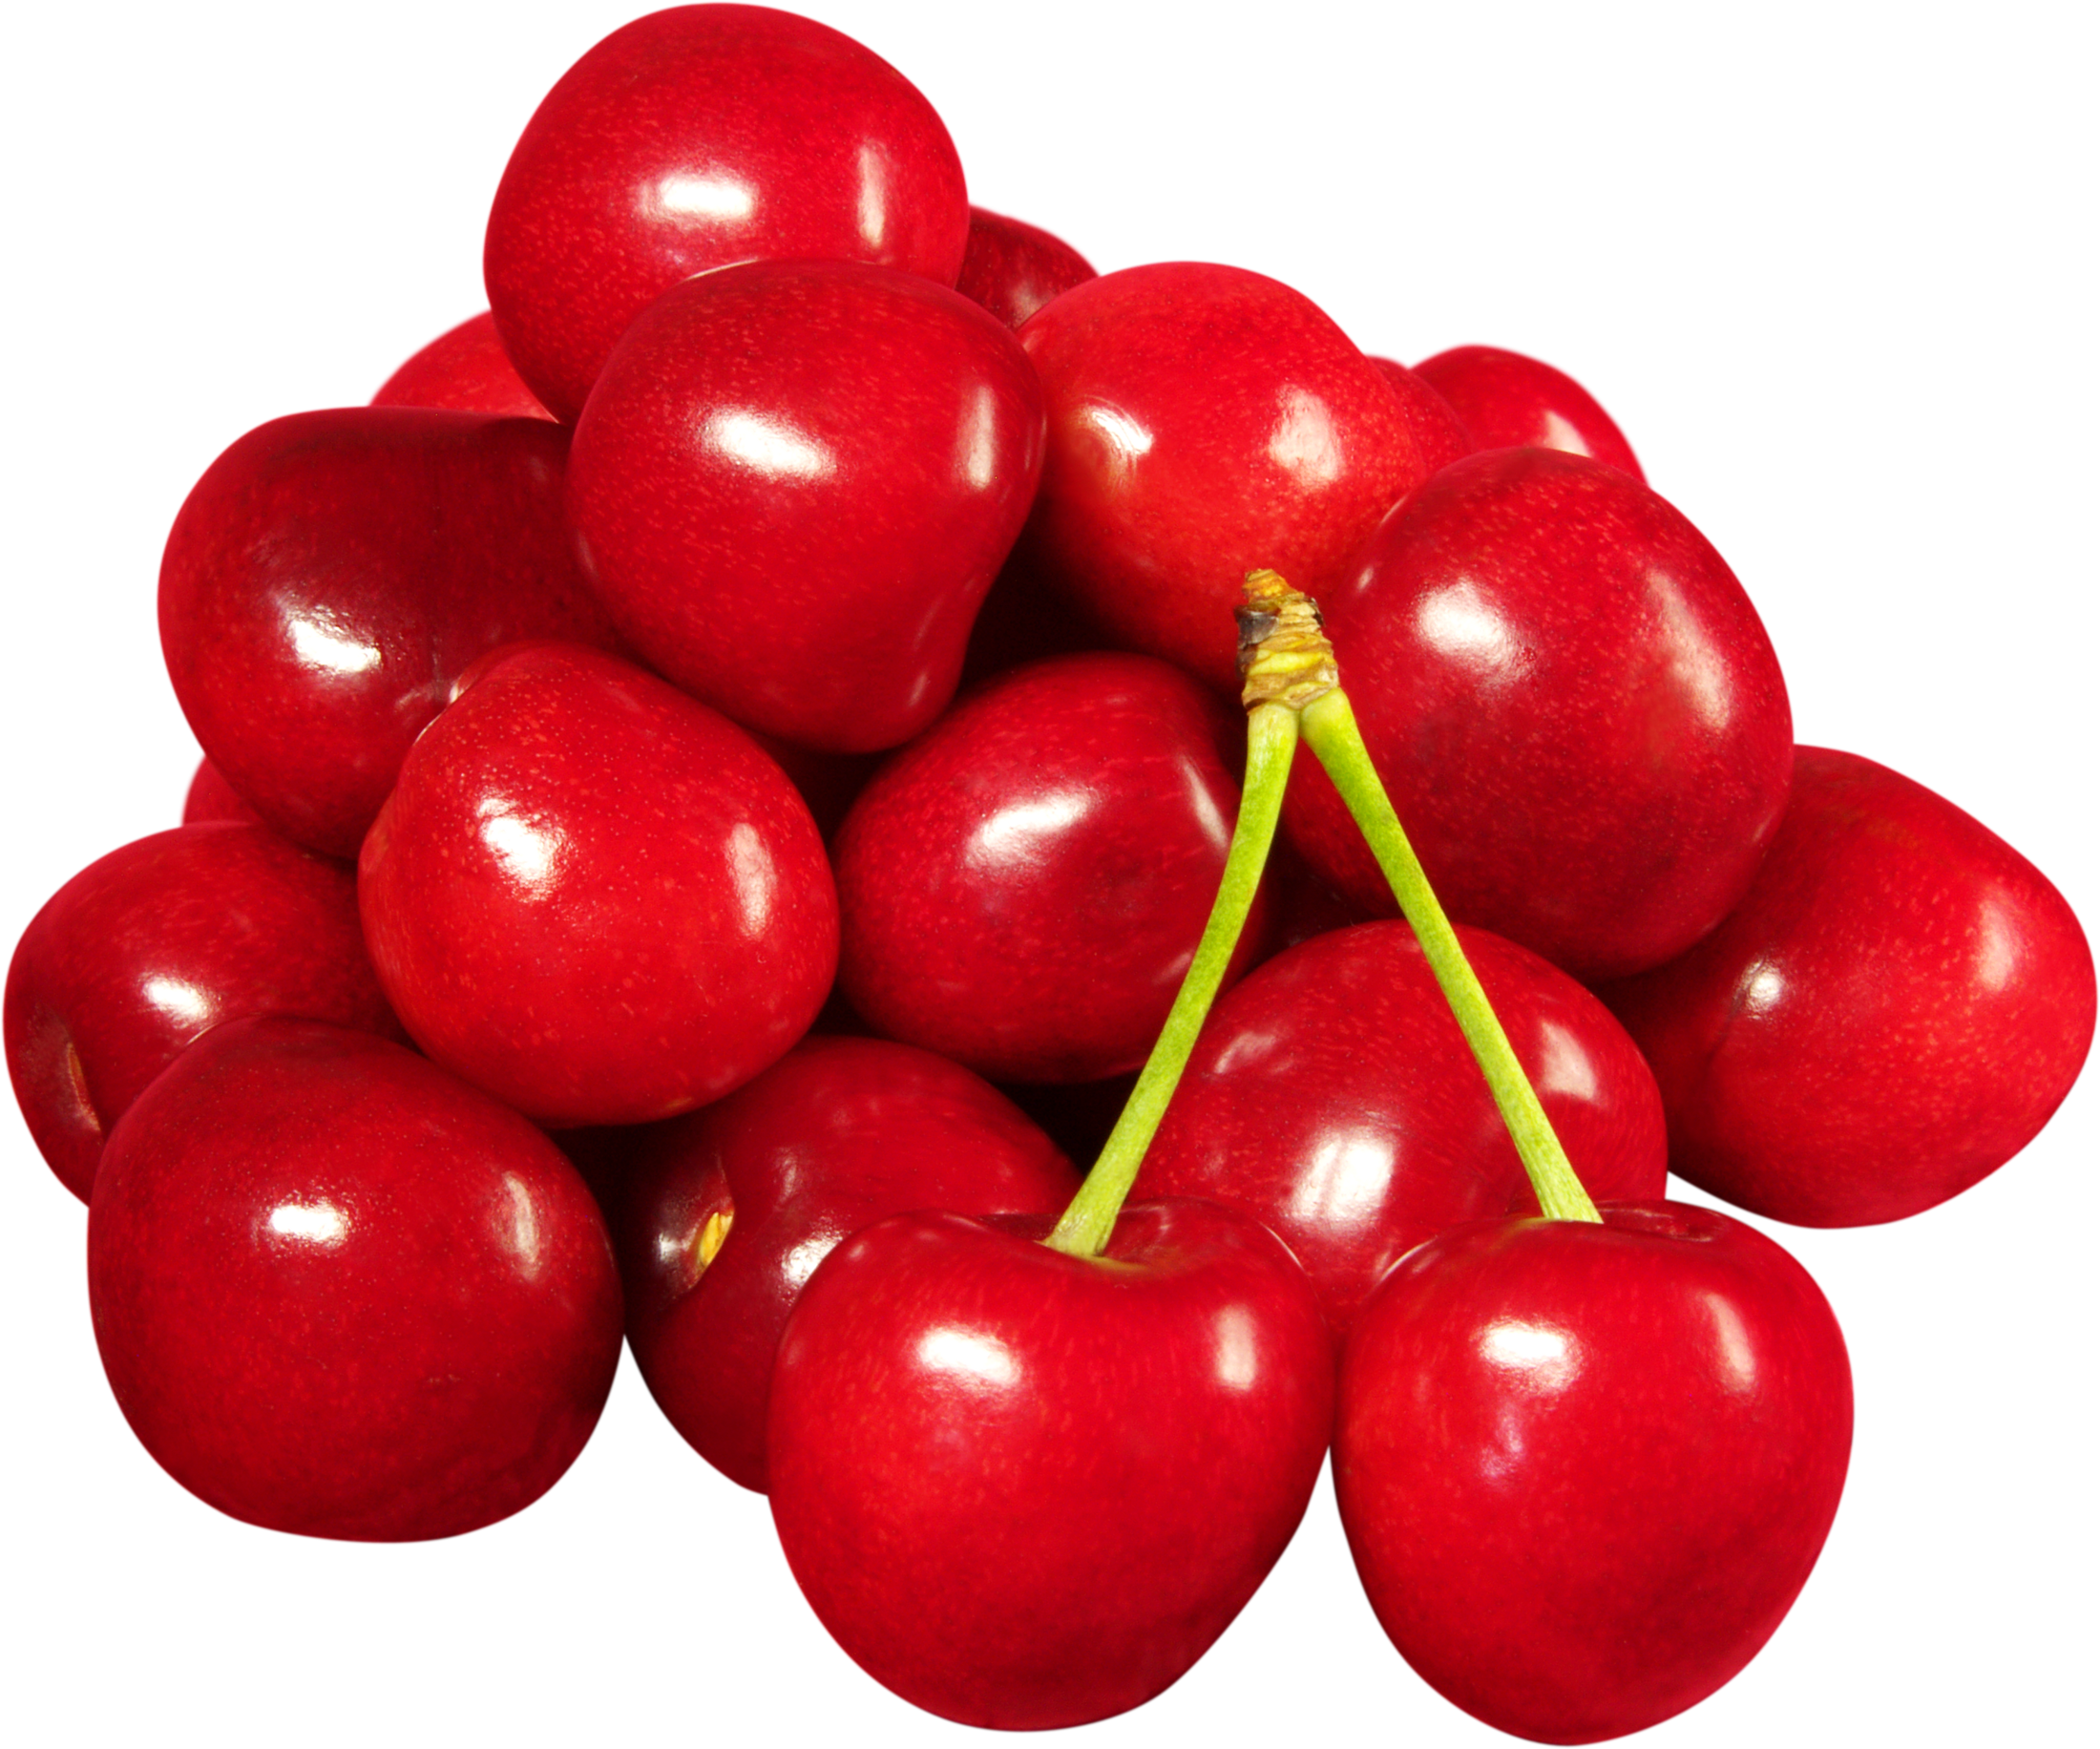 red cherry PNG image, free download